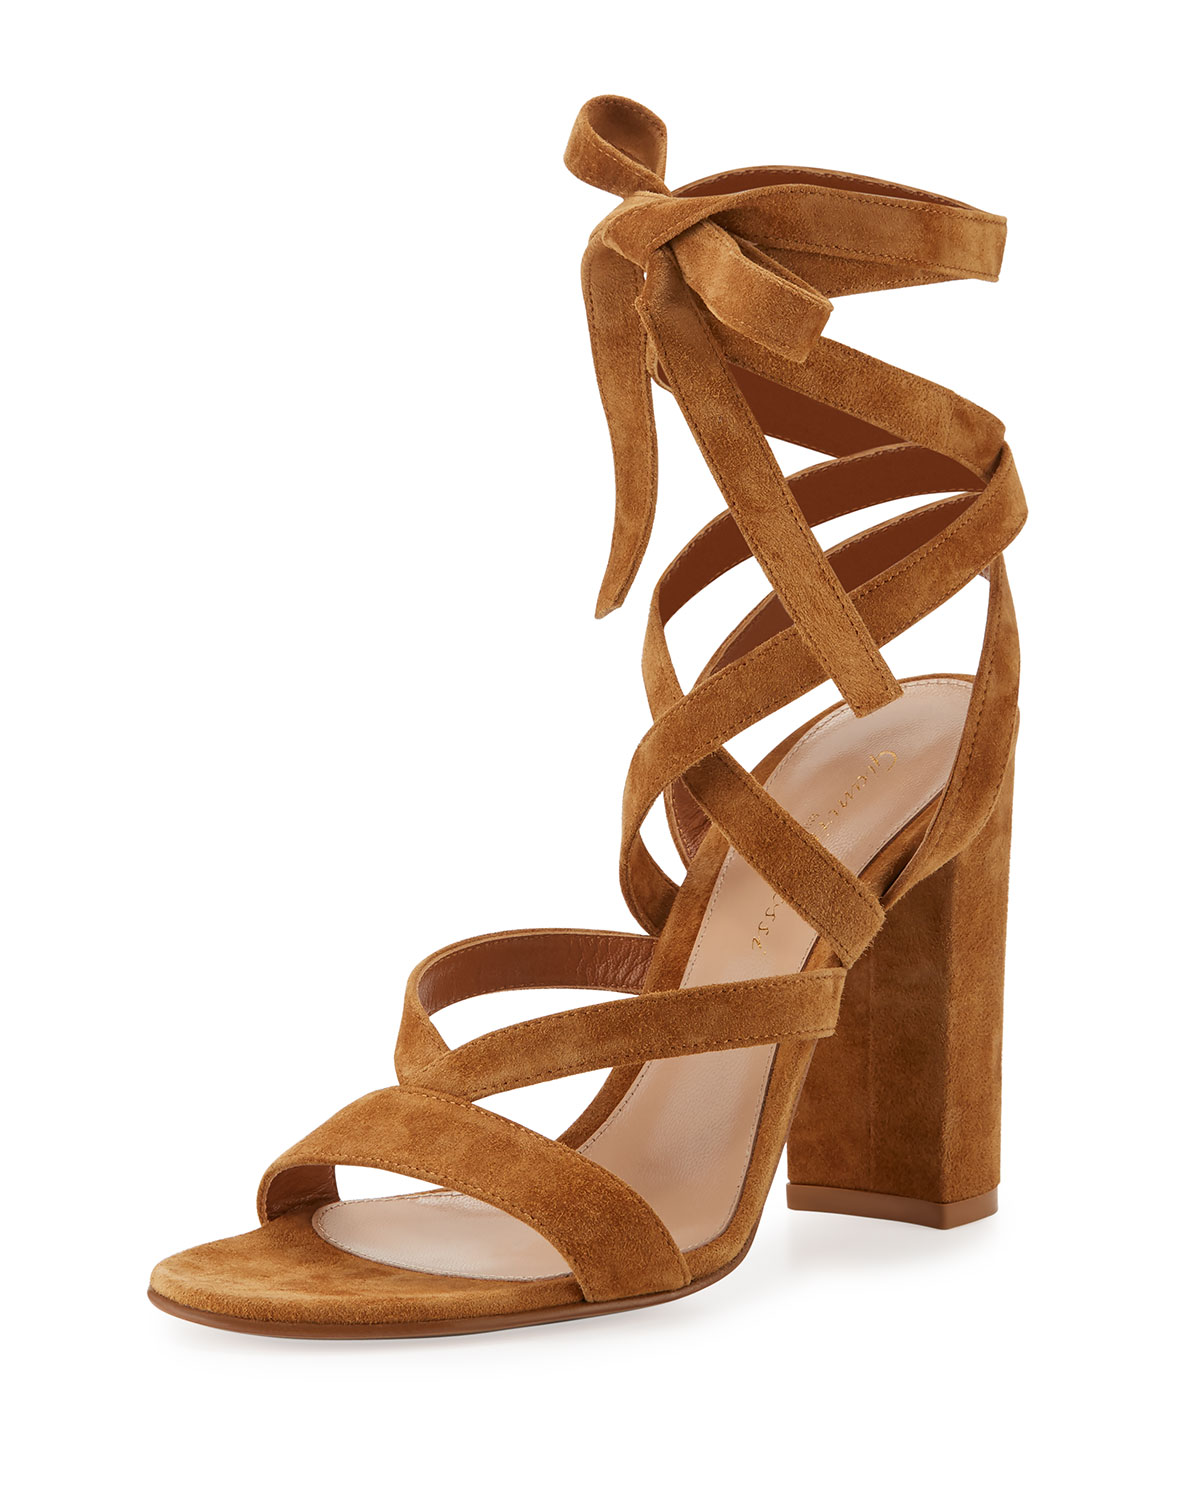 894d98cd2b7 Gianvito Rossi Janis High Suede Lace-Up 105mm Sandal